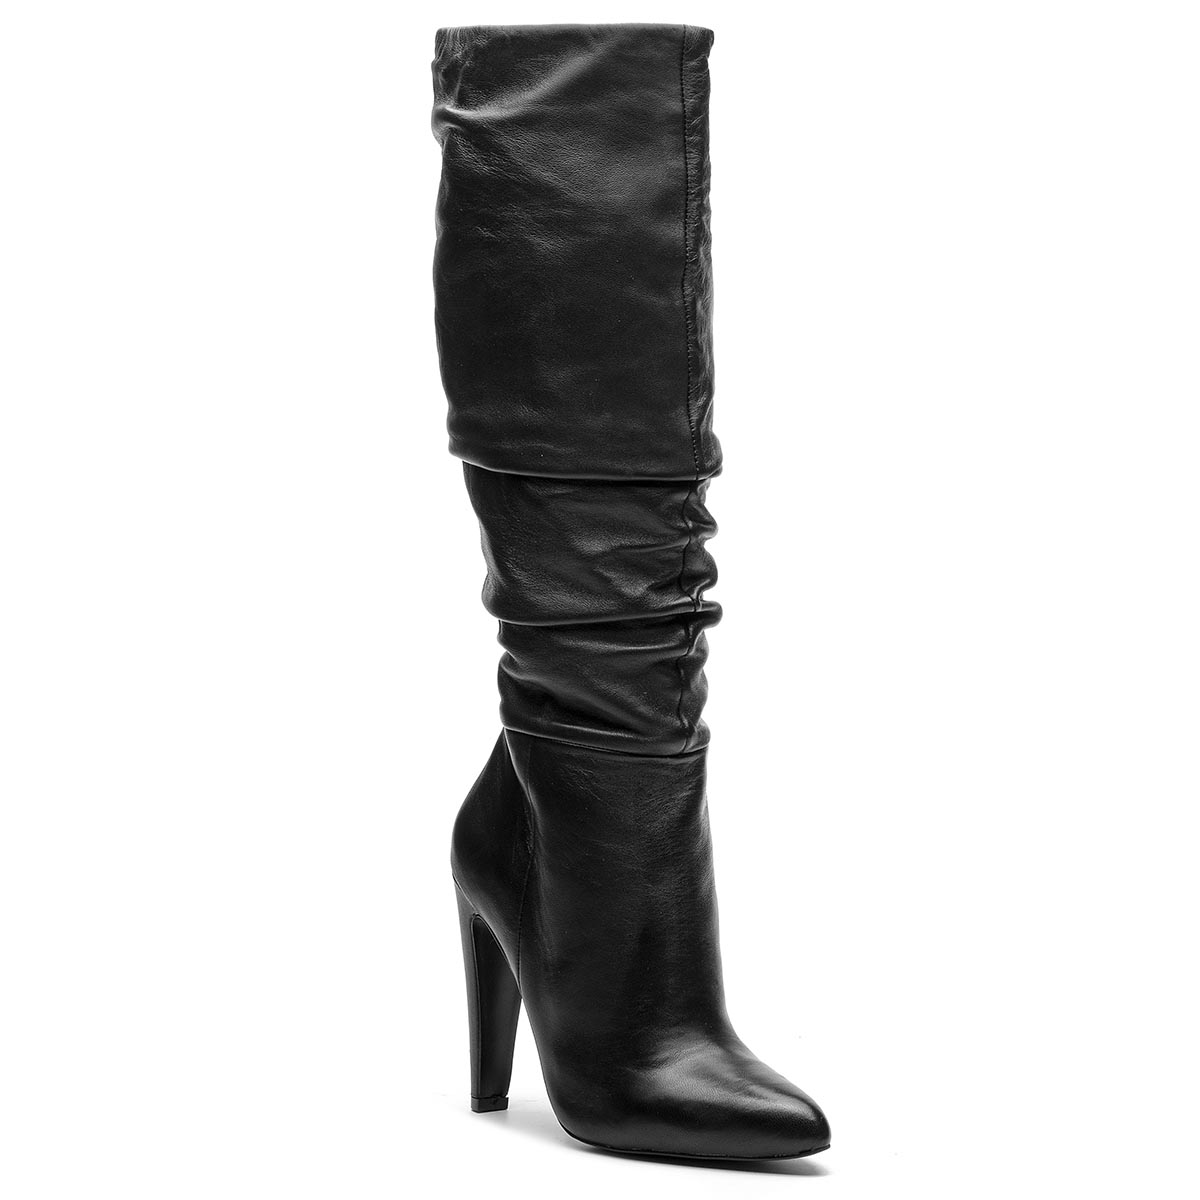 Cizme STEVE MADDEN - Carrie Boot SM11000130-03001-017 Black Leather